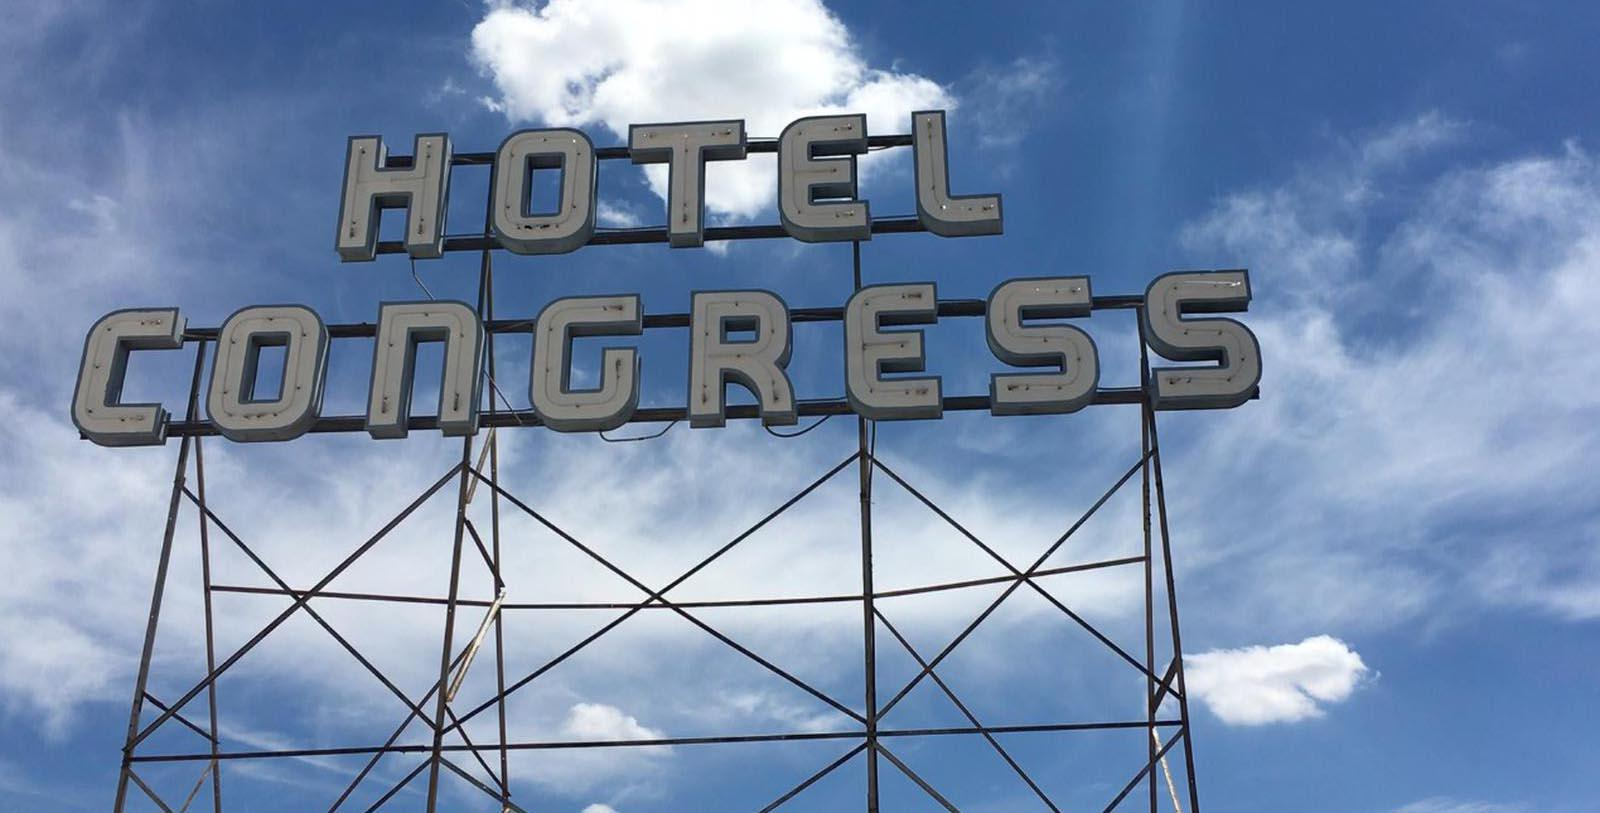 Image of Hotel Congress Neon Sign The Hotel Congress, 1919, Member of Historic Hotels of America, in Tucson, Arizona, Explore